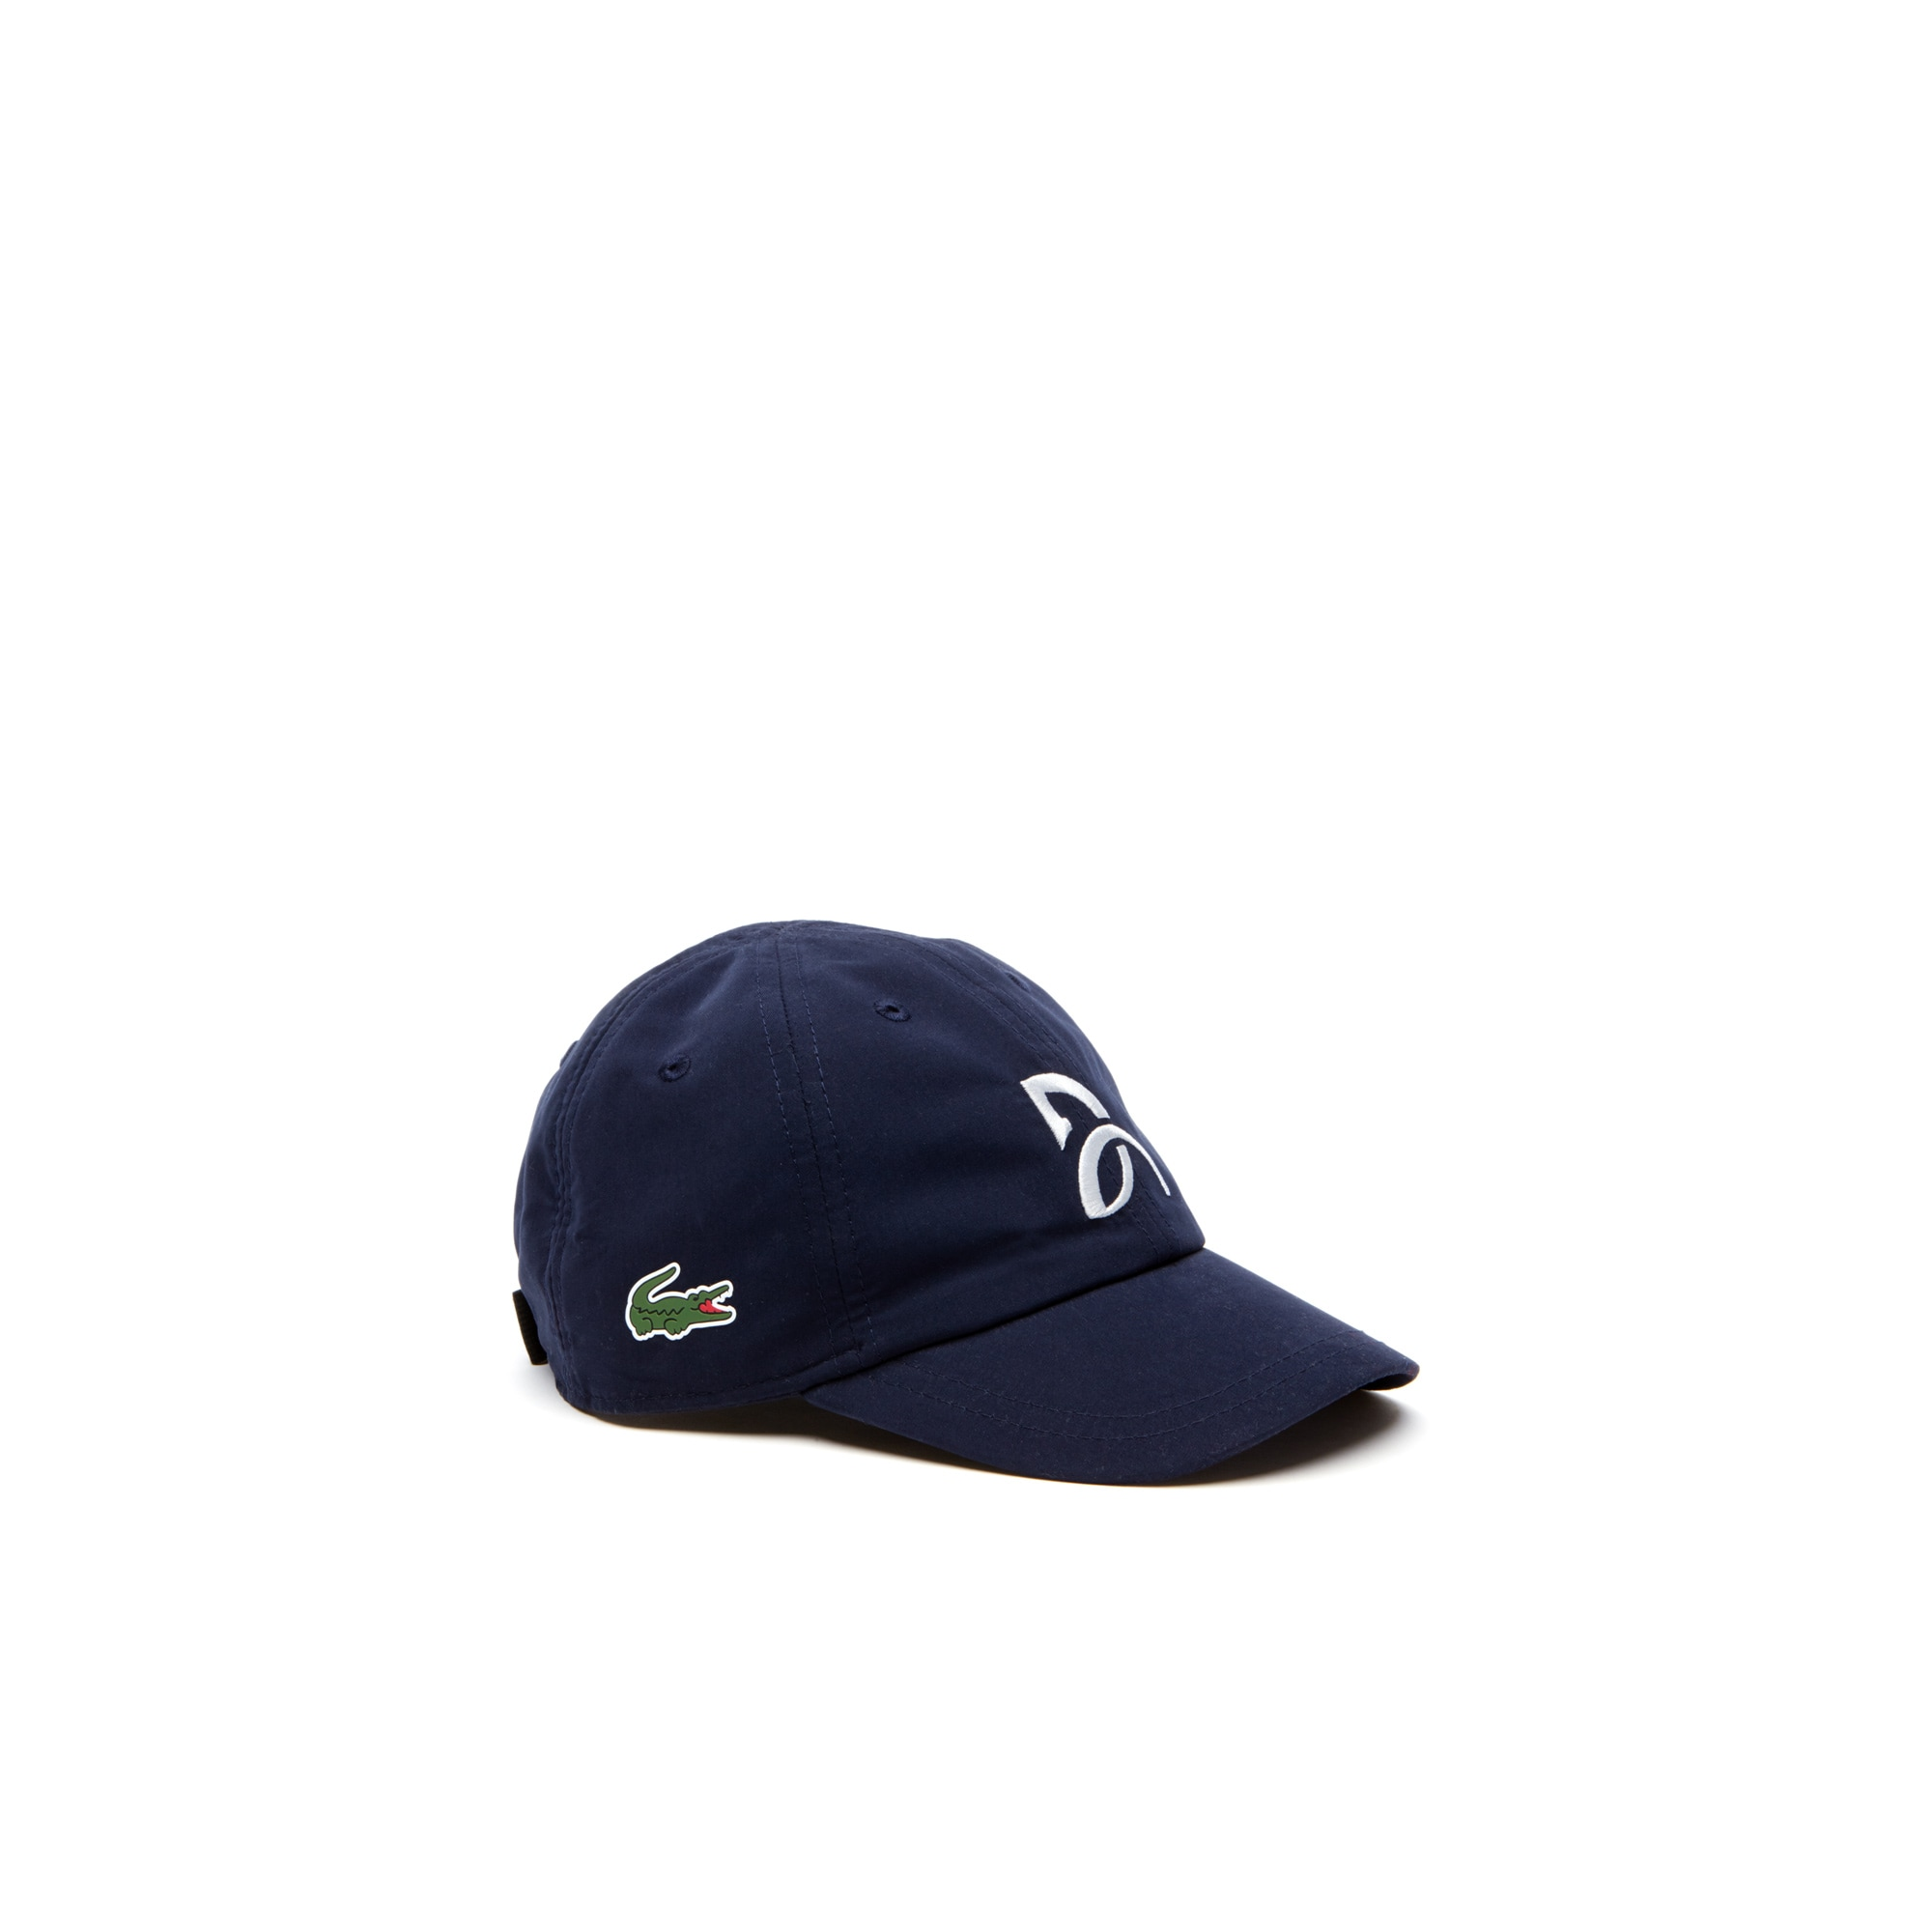 Lacoste SPORT NOVAK DJOKOVIC SUPPORT WITH STYLE COLLECTION-cap jongens microvezel